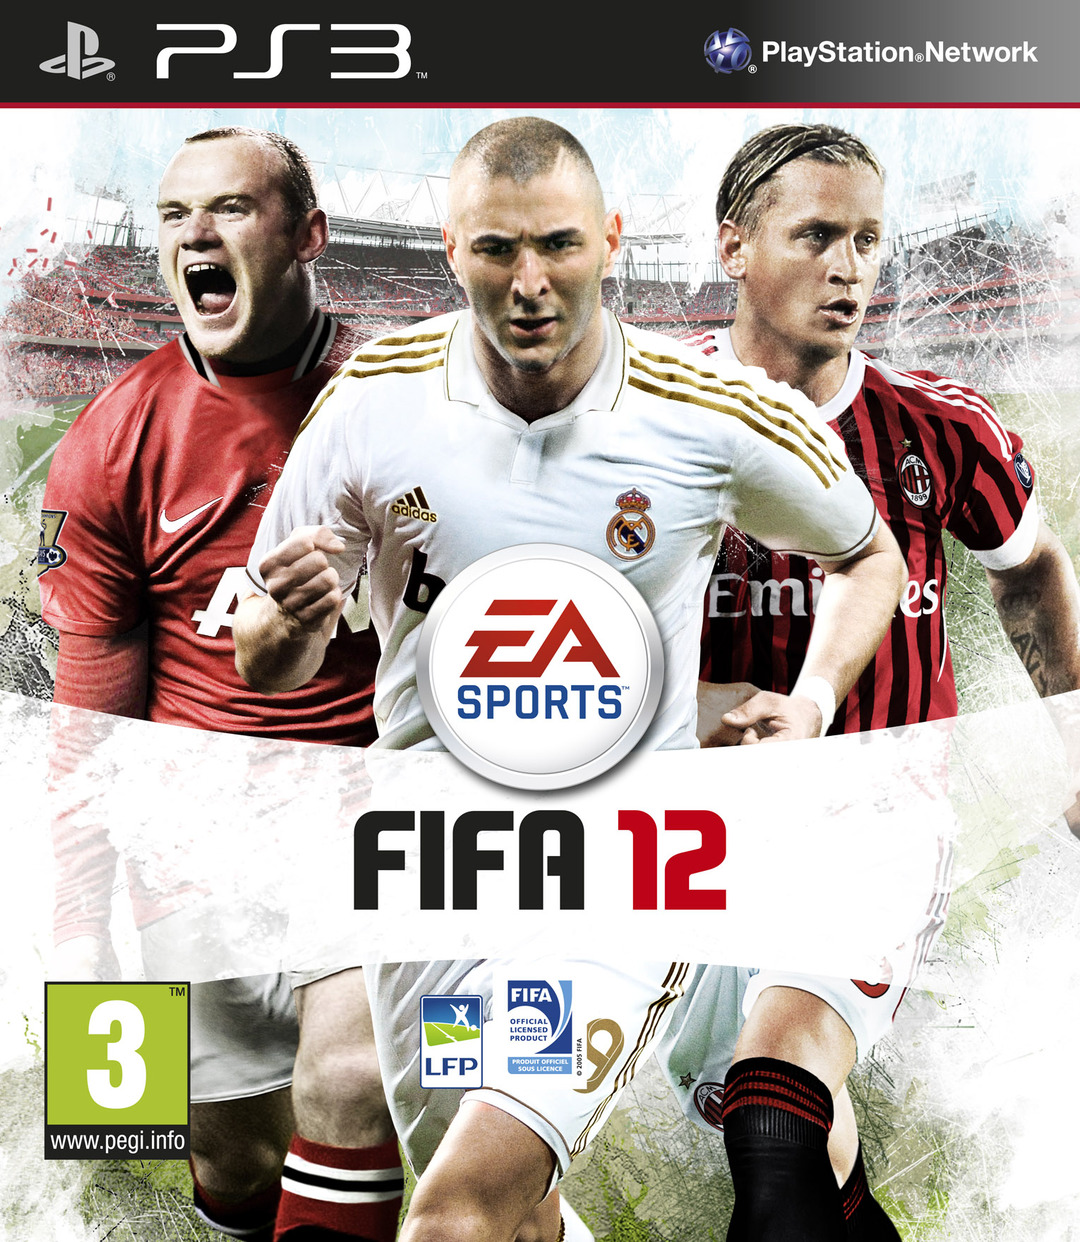 FIFA 12 -PS3 (Exclue) [FS]